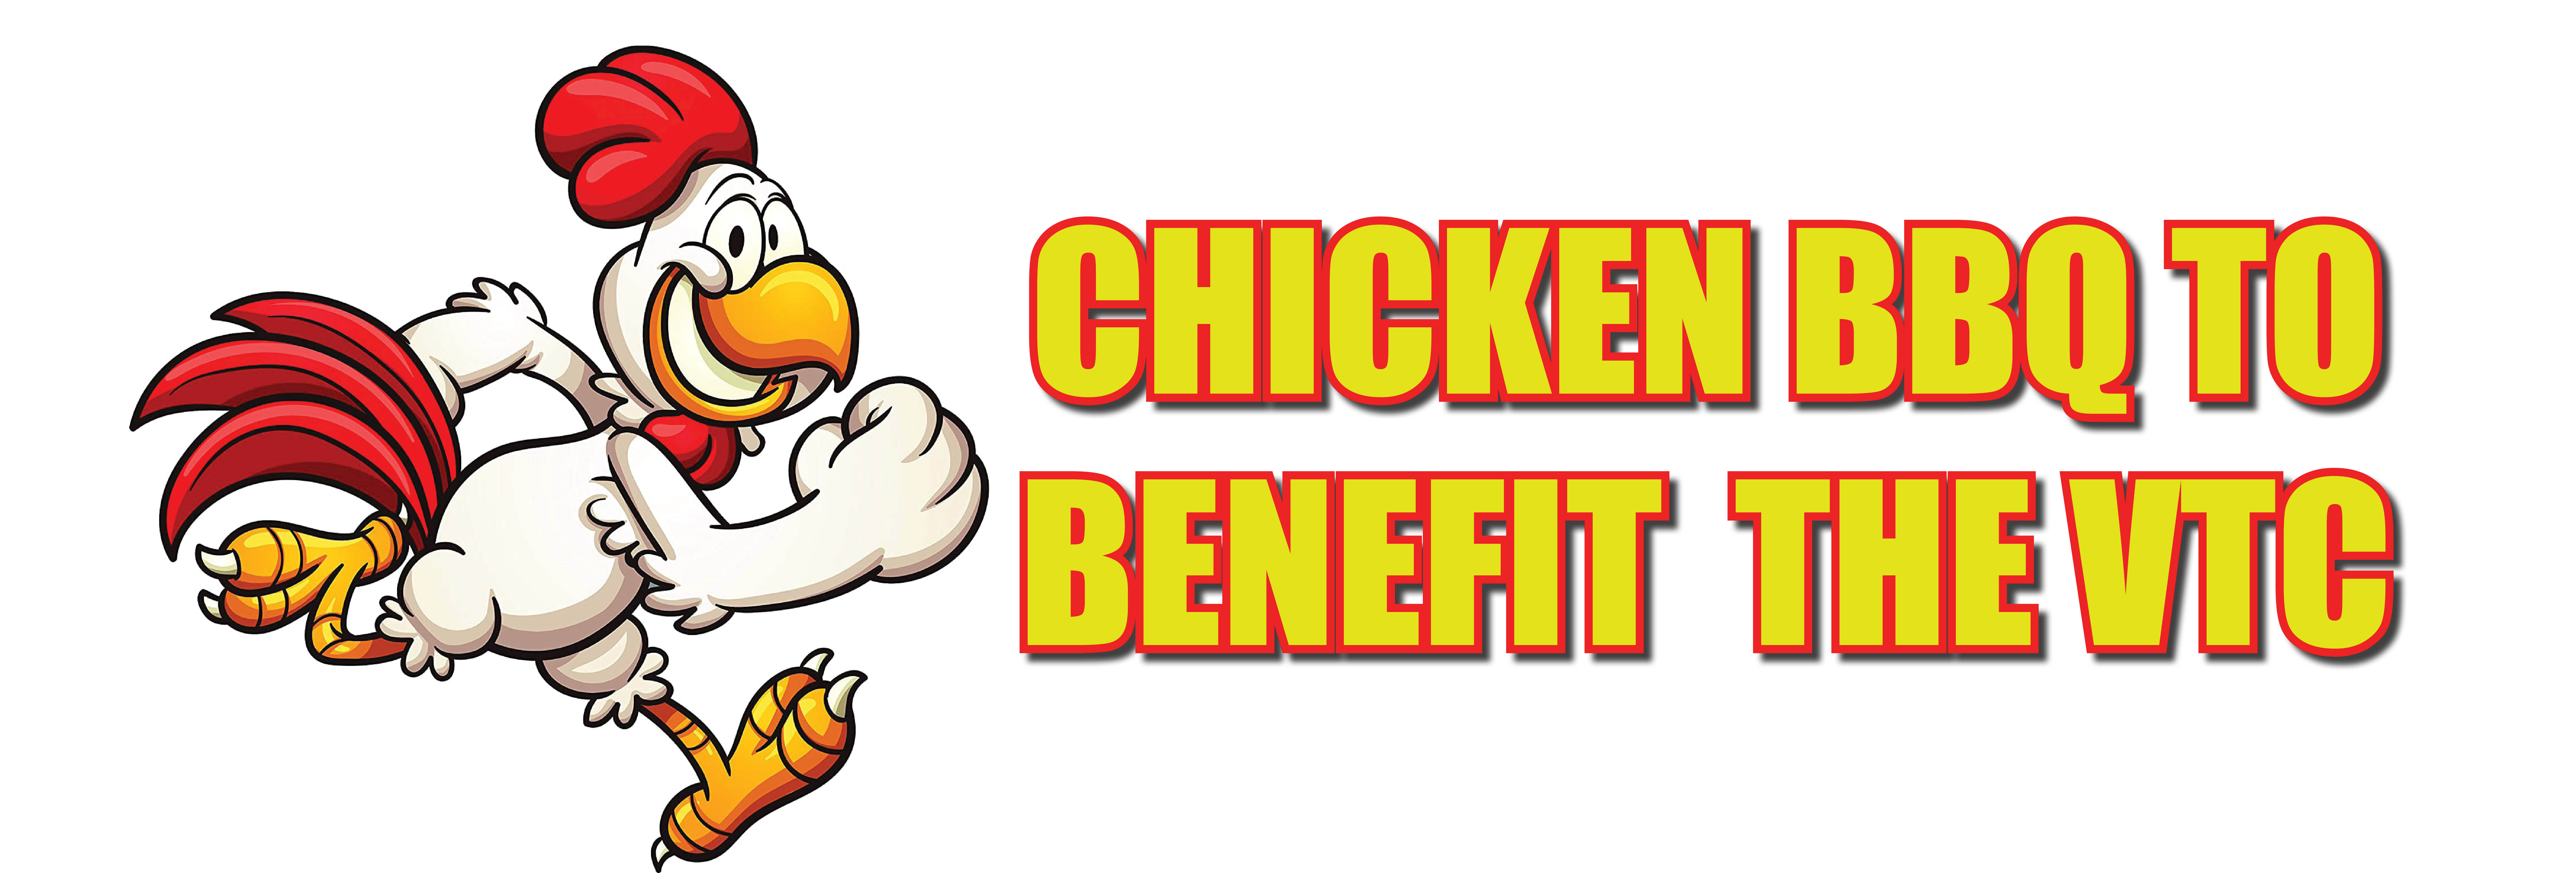 Chicken BBQ to Benefit the VTC